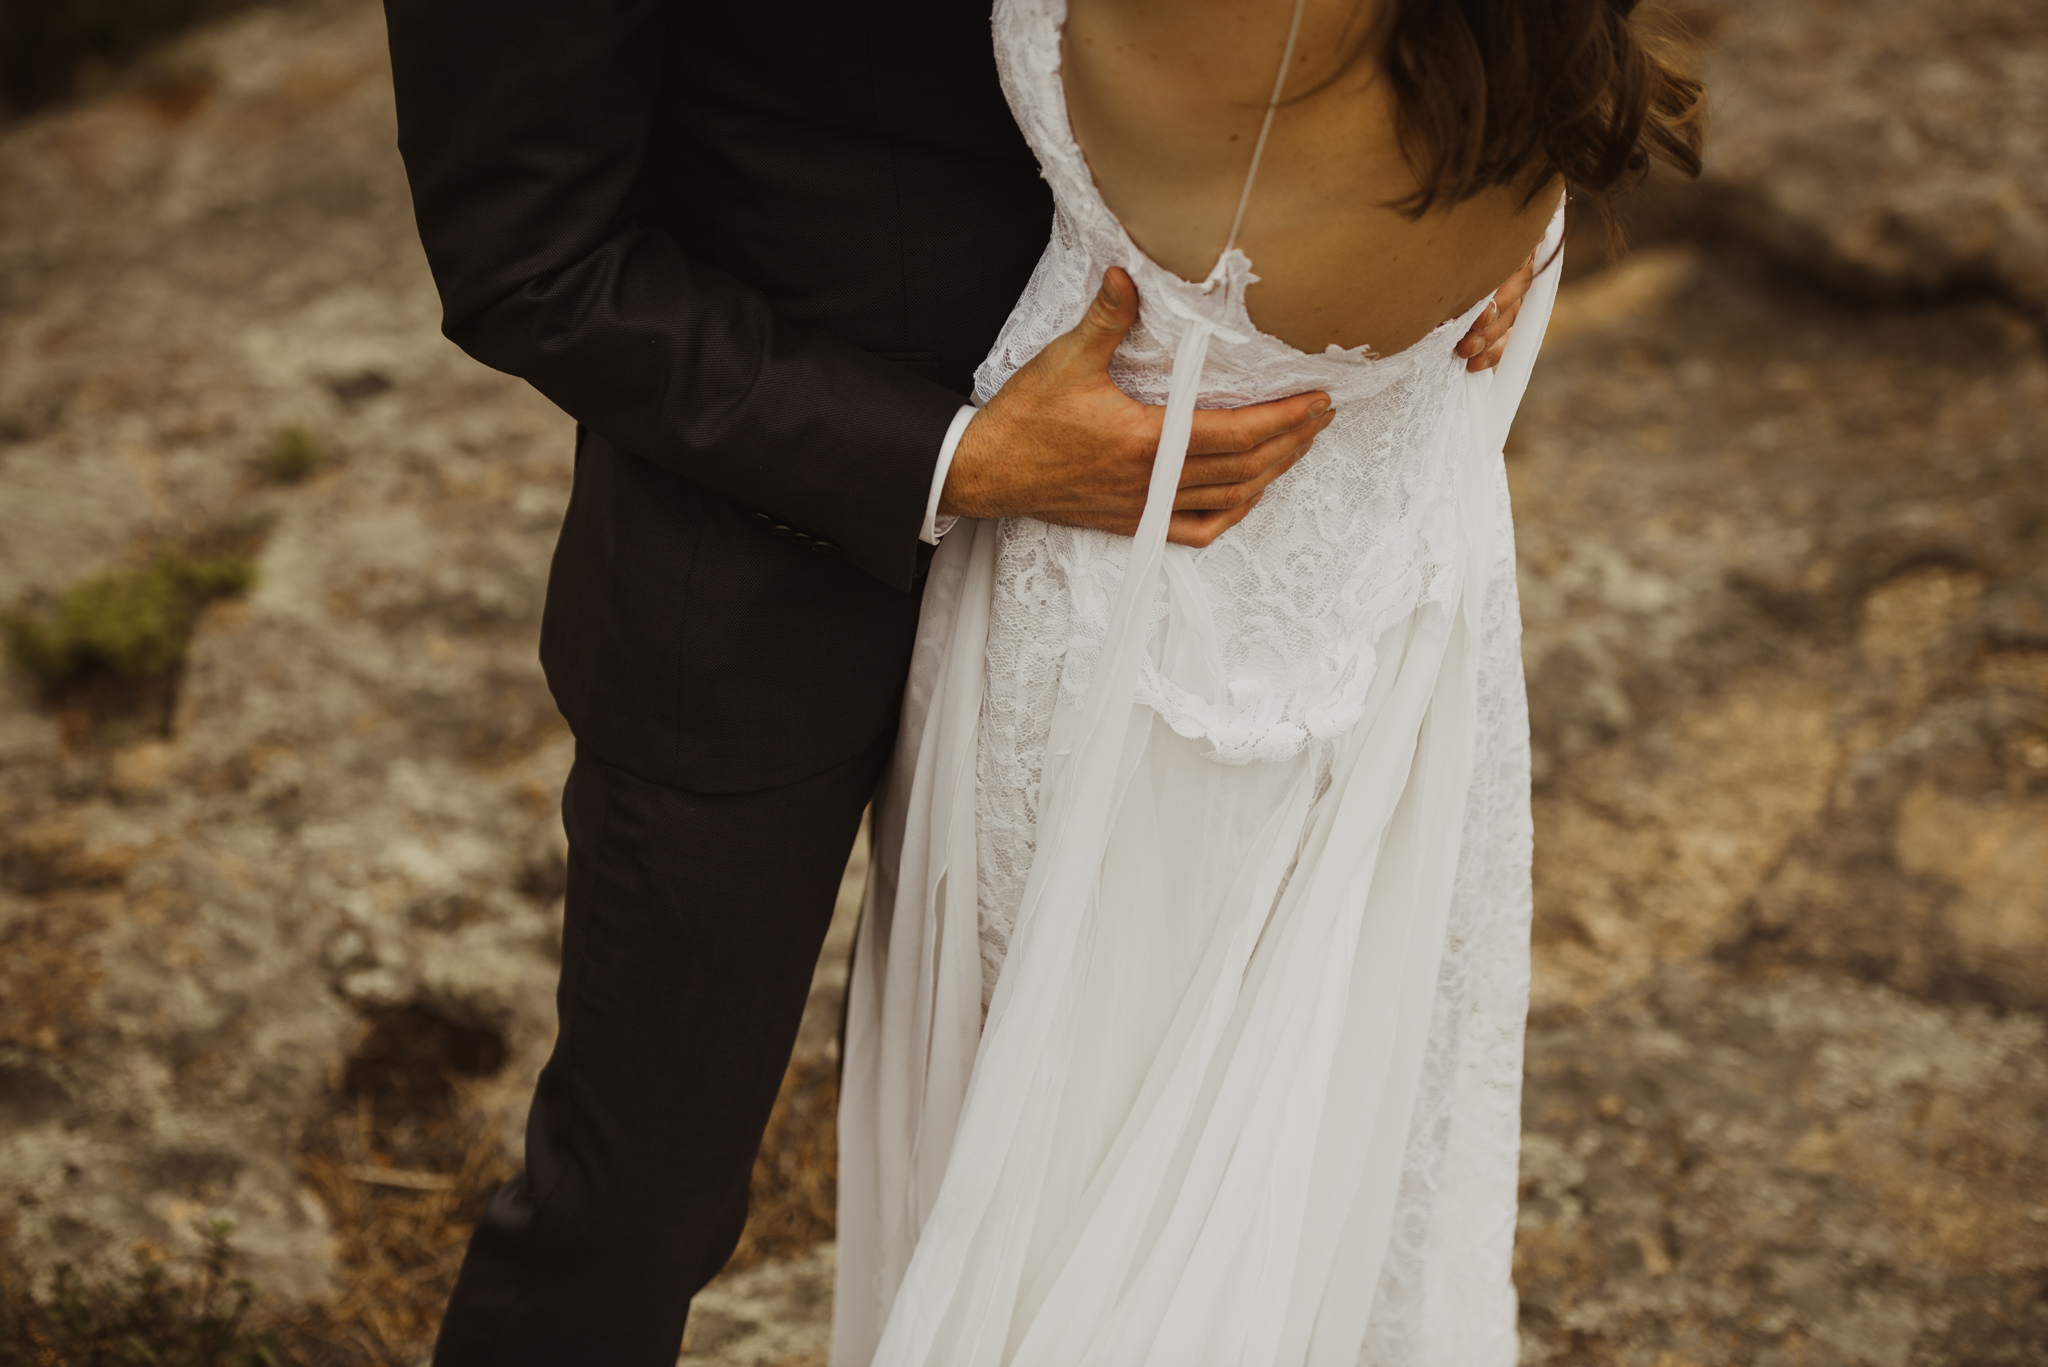 ©Isaiah + Taylor Photography - Estes National Park Adventure Elopement, Colorado Rockies-133.jpg